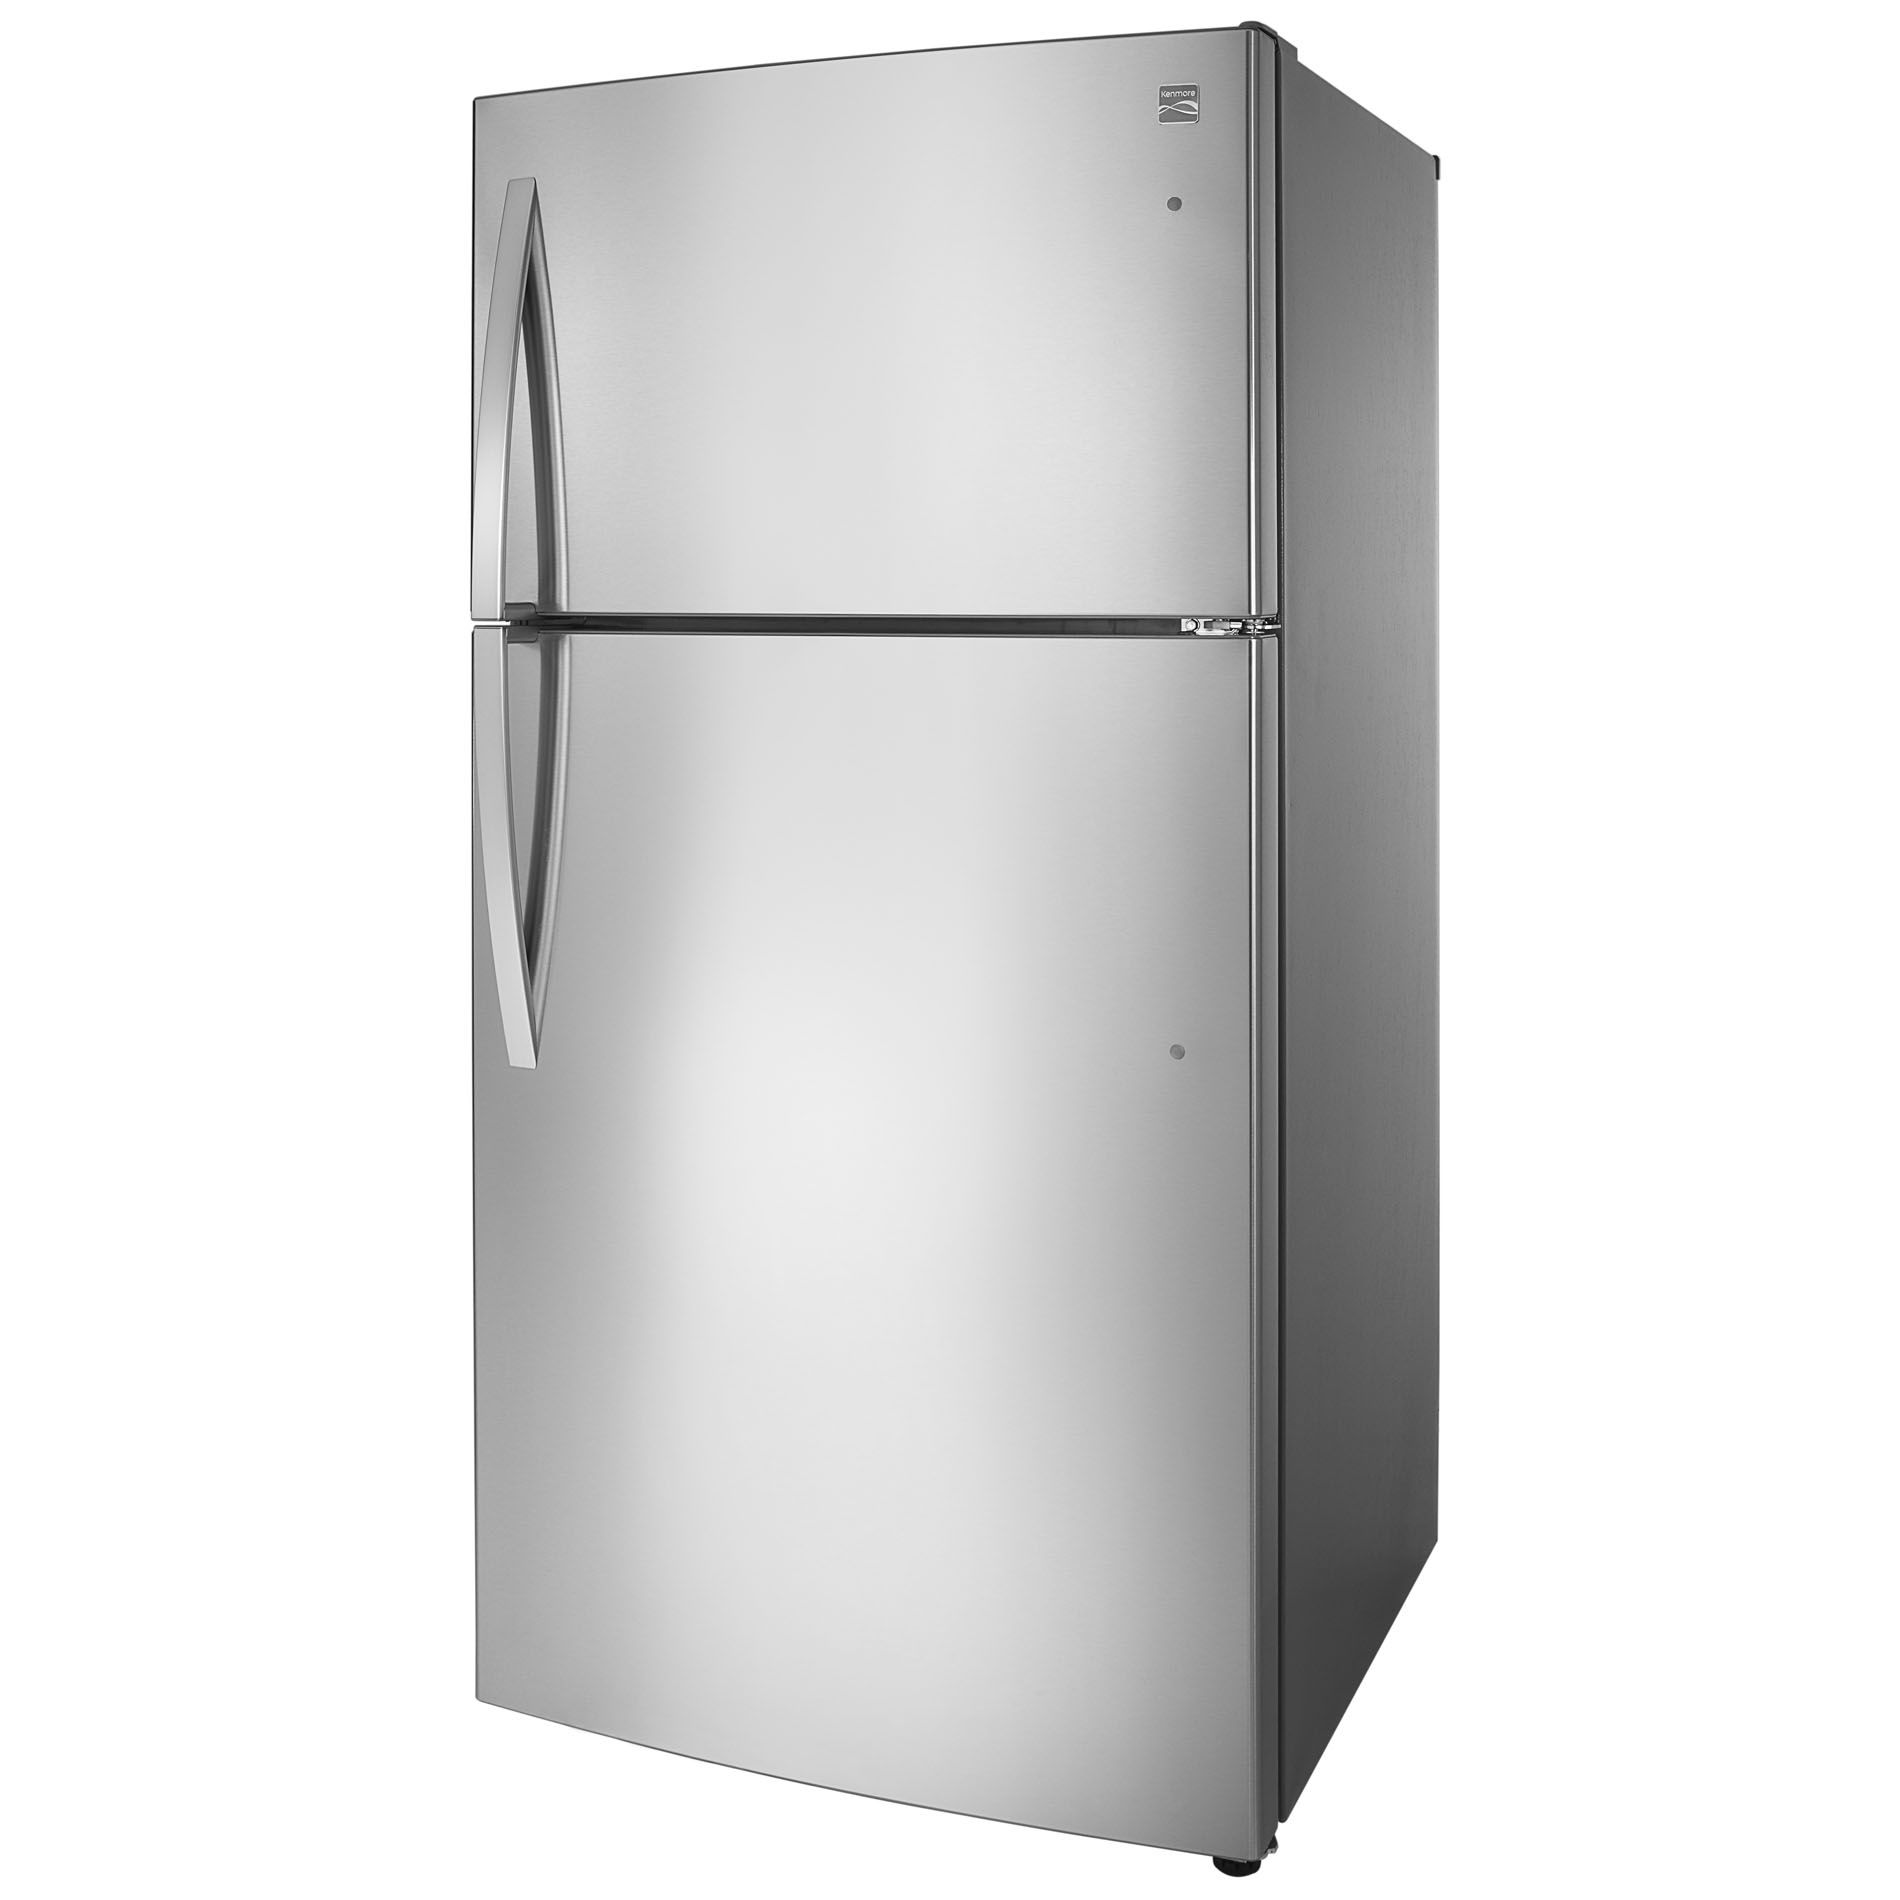 Kenmore 68033 23.8 cu. ft. Top-Freezer Refrigerator - Stainless Steel